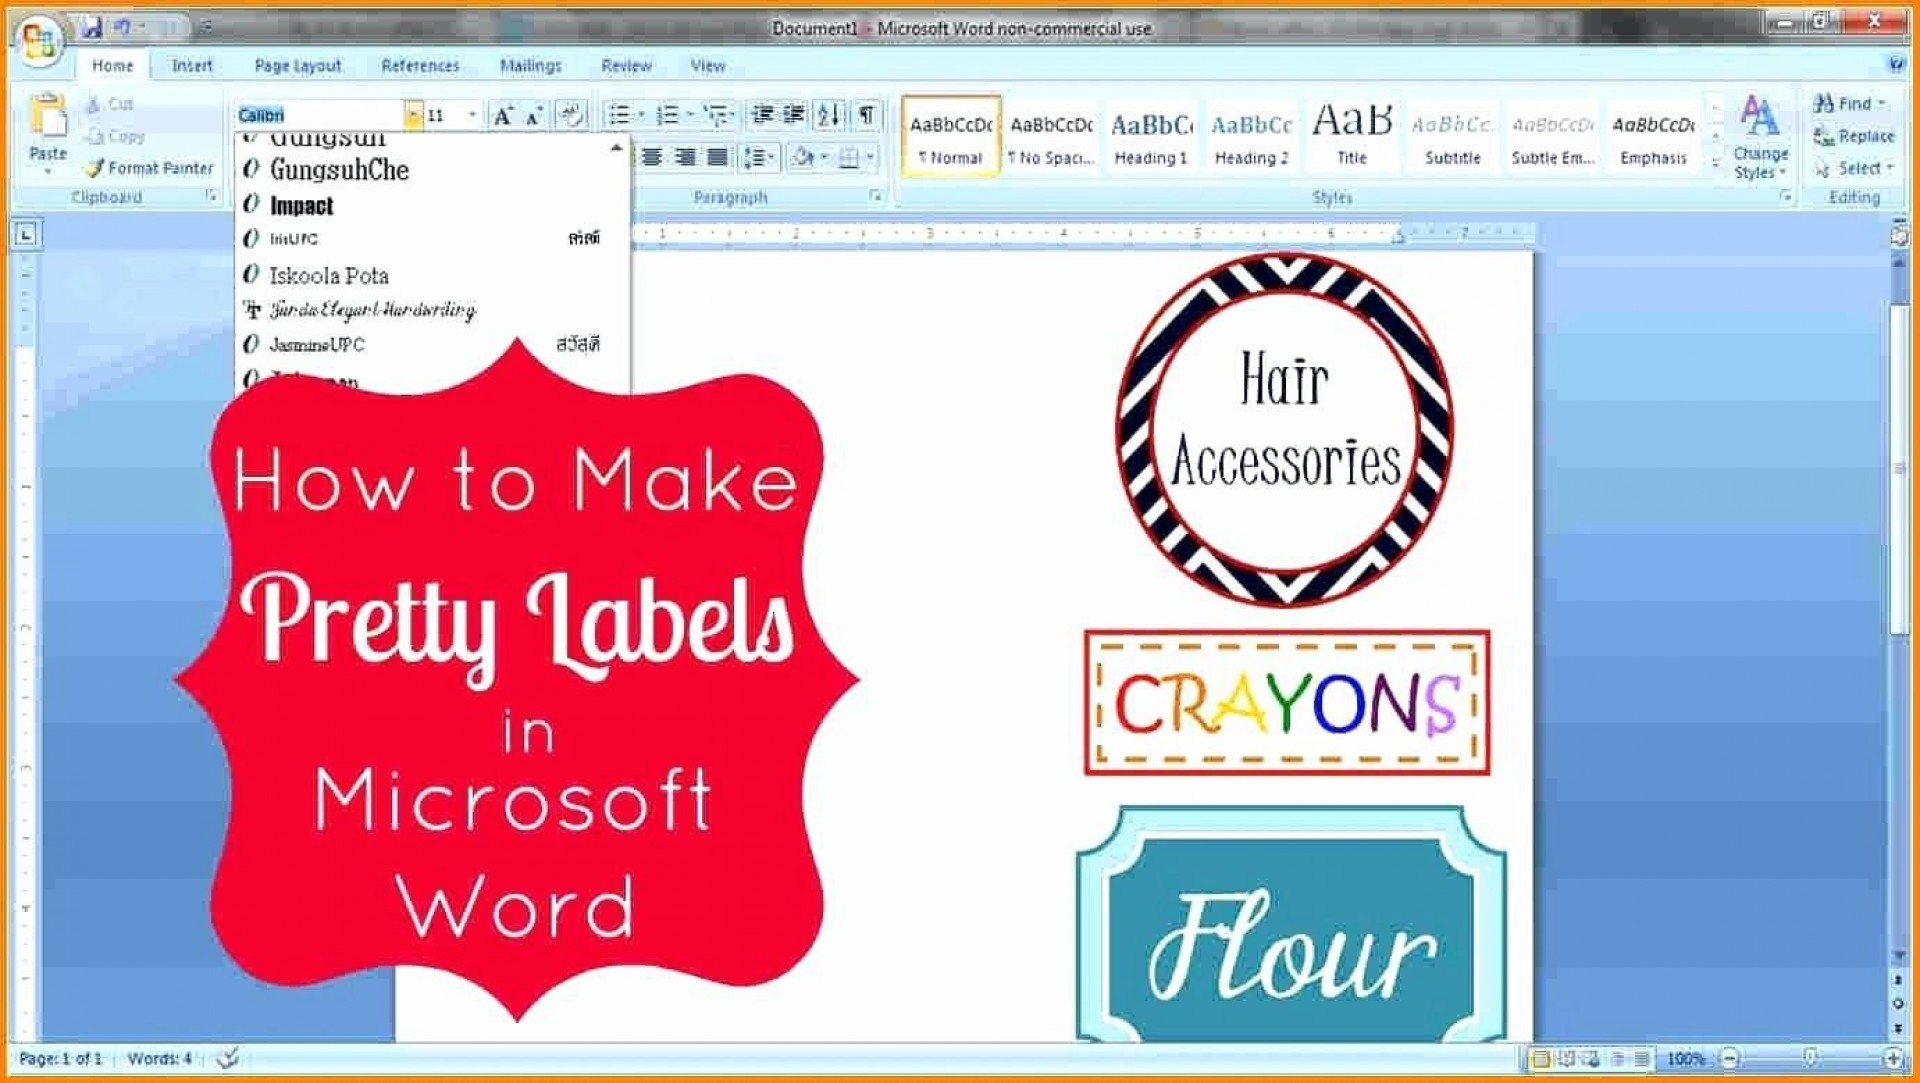 007 Magnificent Microsoft Word Label Template Free Photo  Dvd Download Water Bottle1920